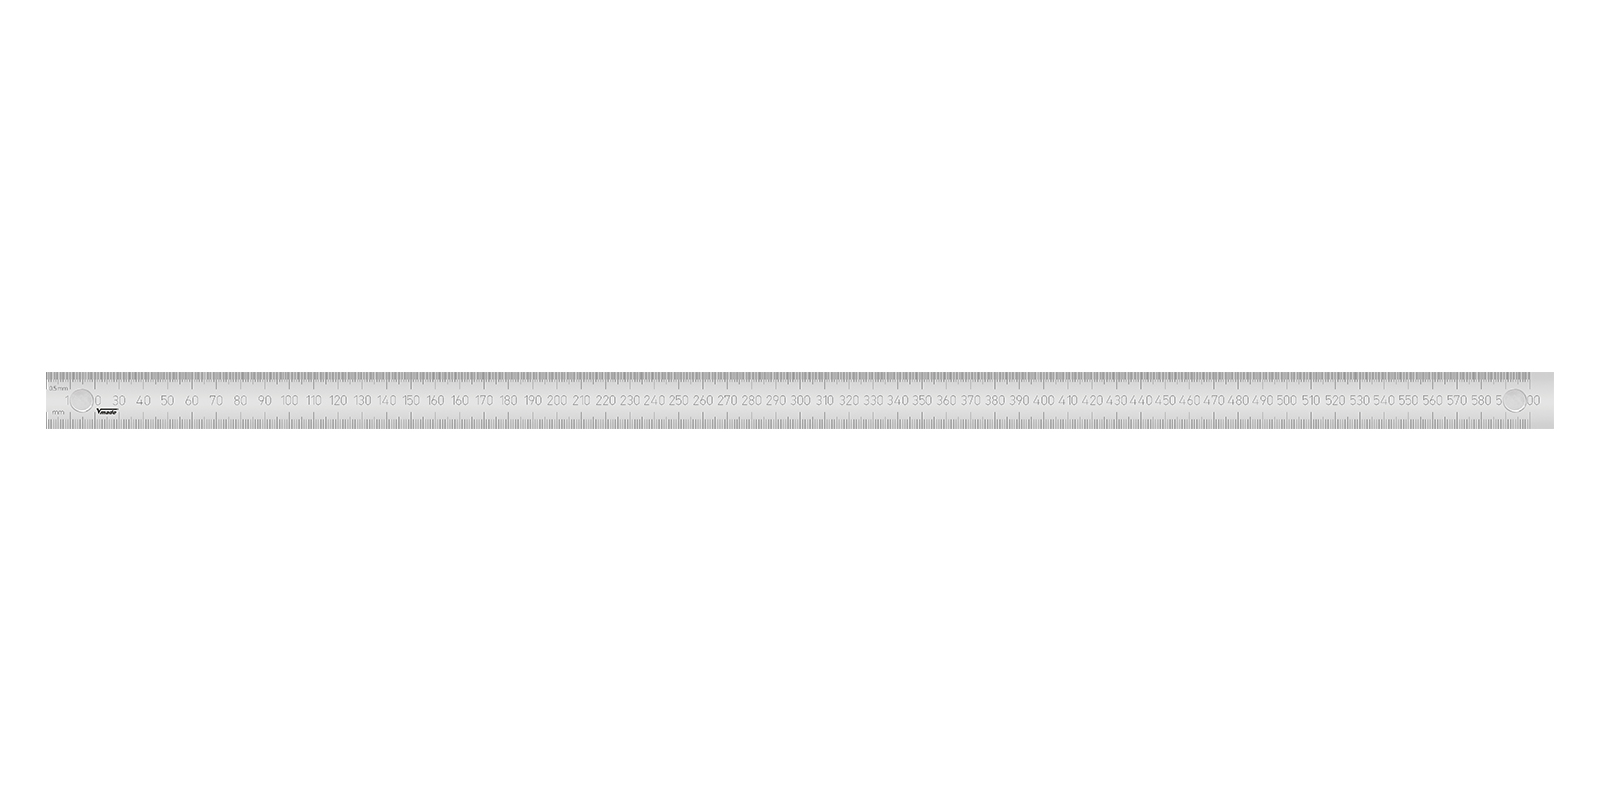 Magnetic stainless steel ruler 600x30x1 mm